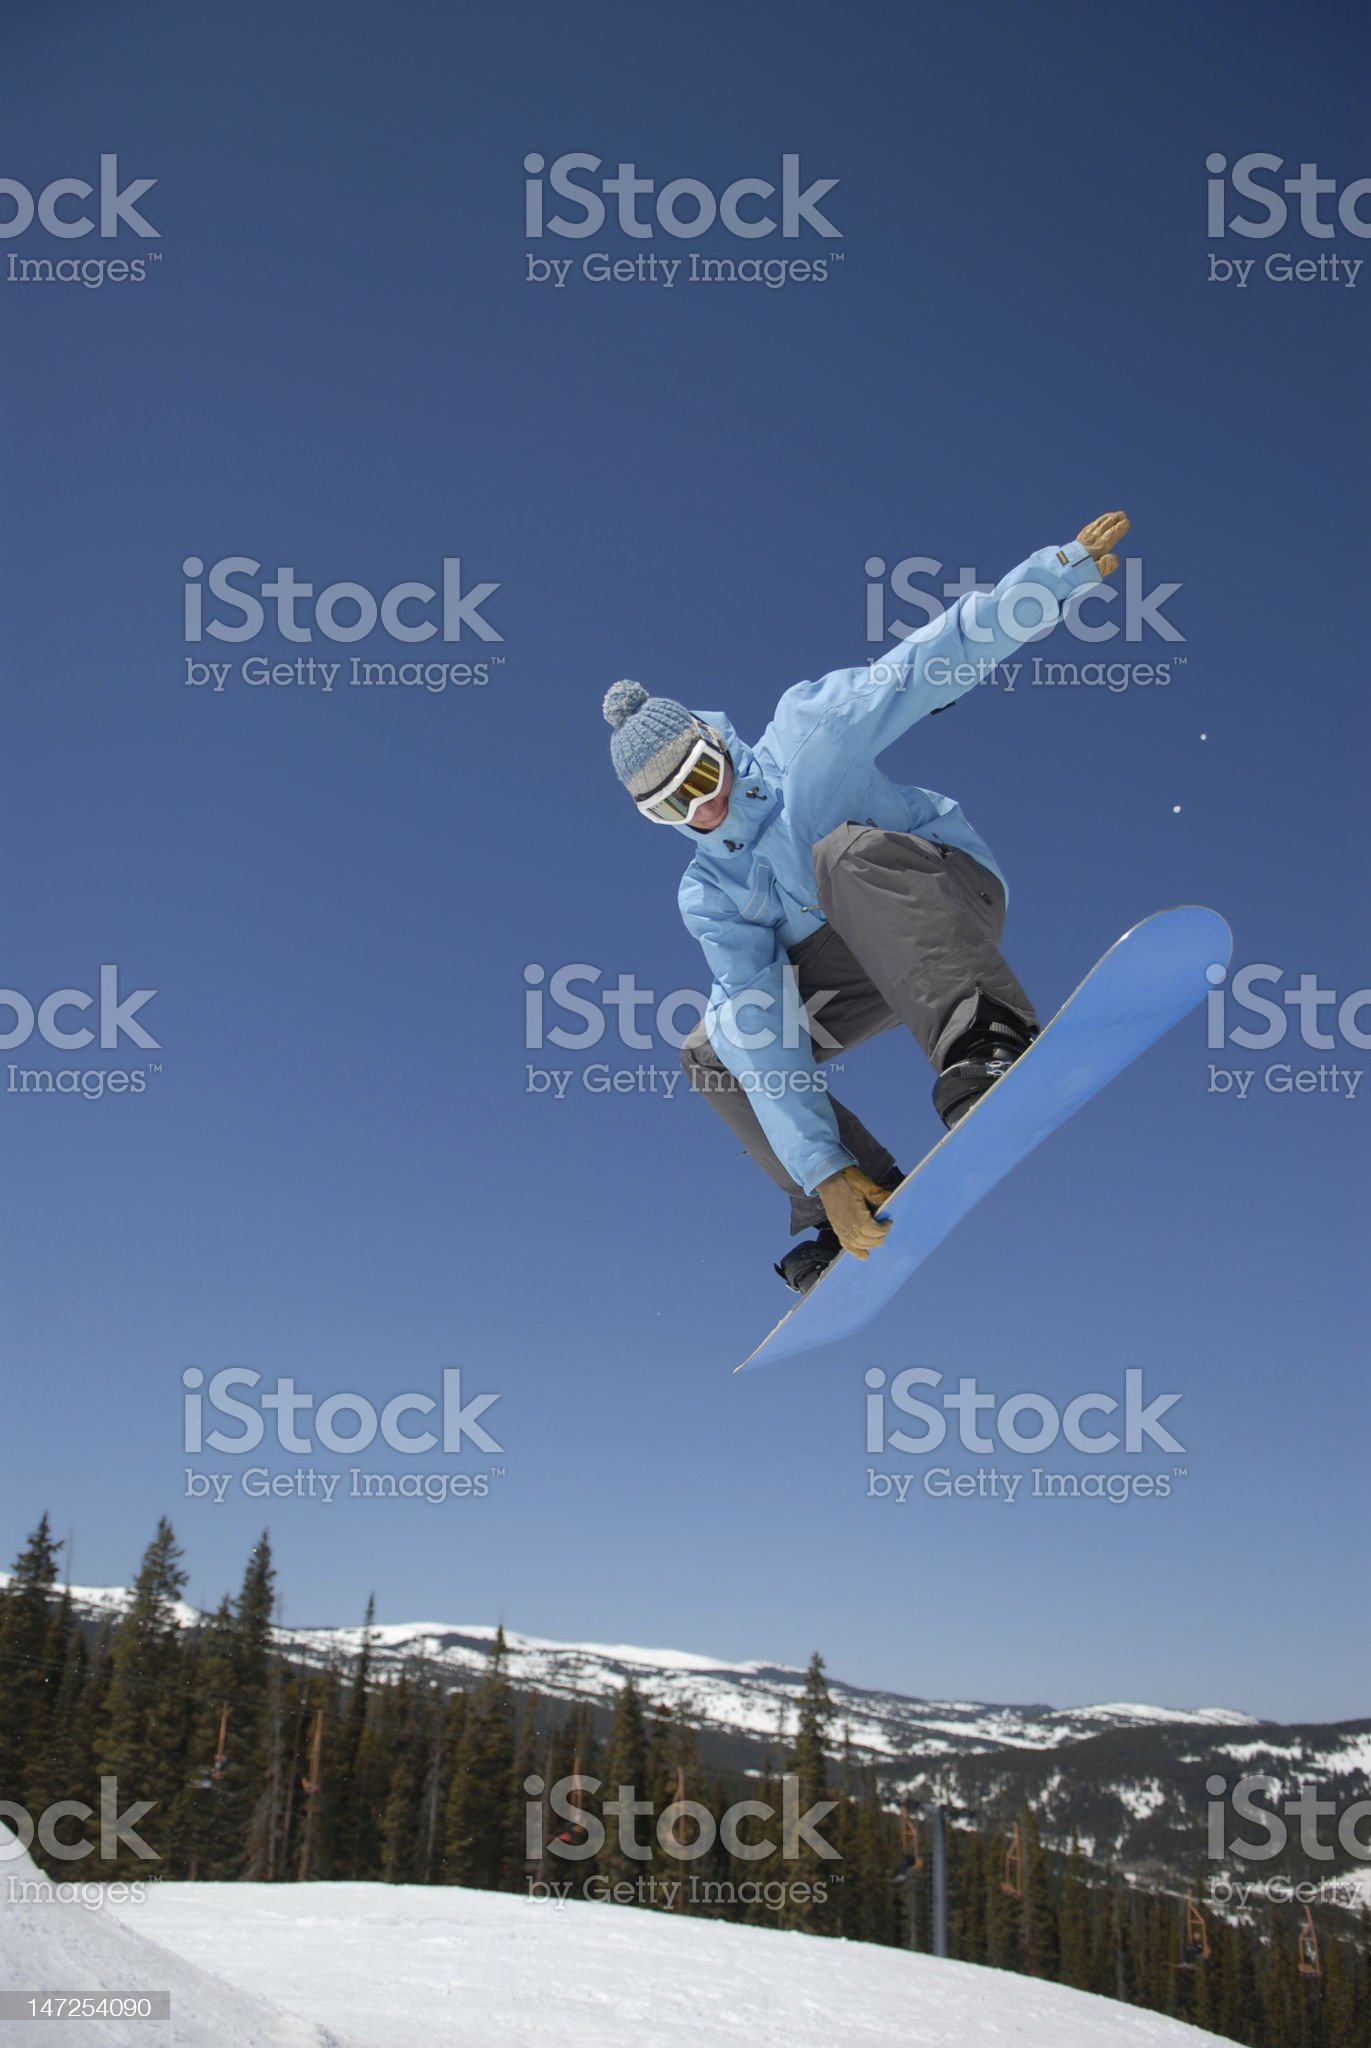 Snowboarder big air over a jump in Colorado royalty-free stock photo